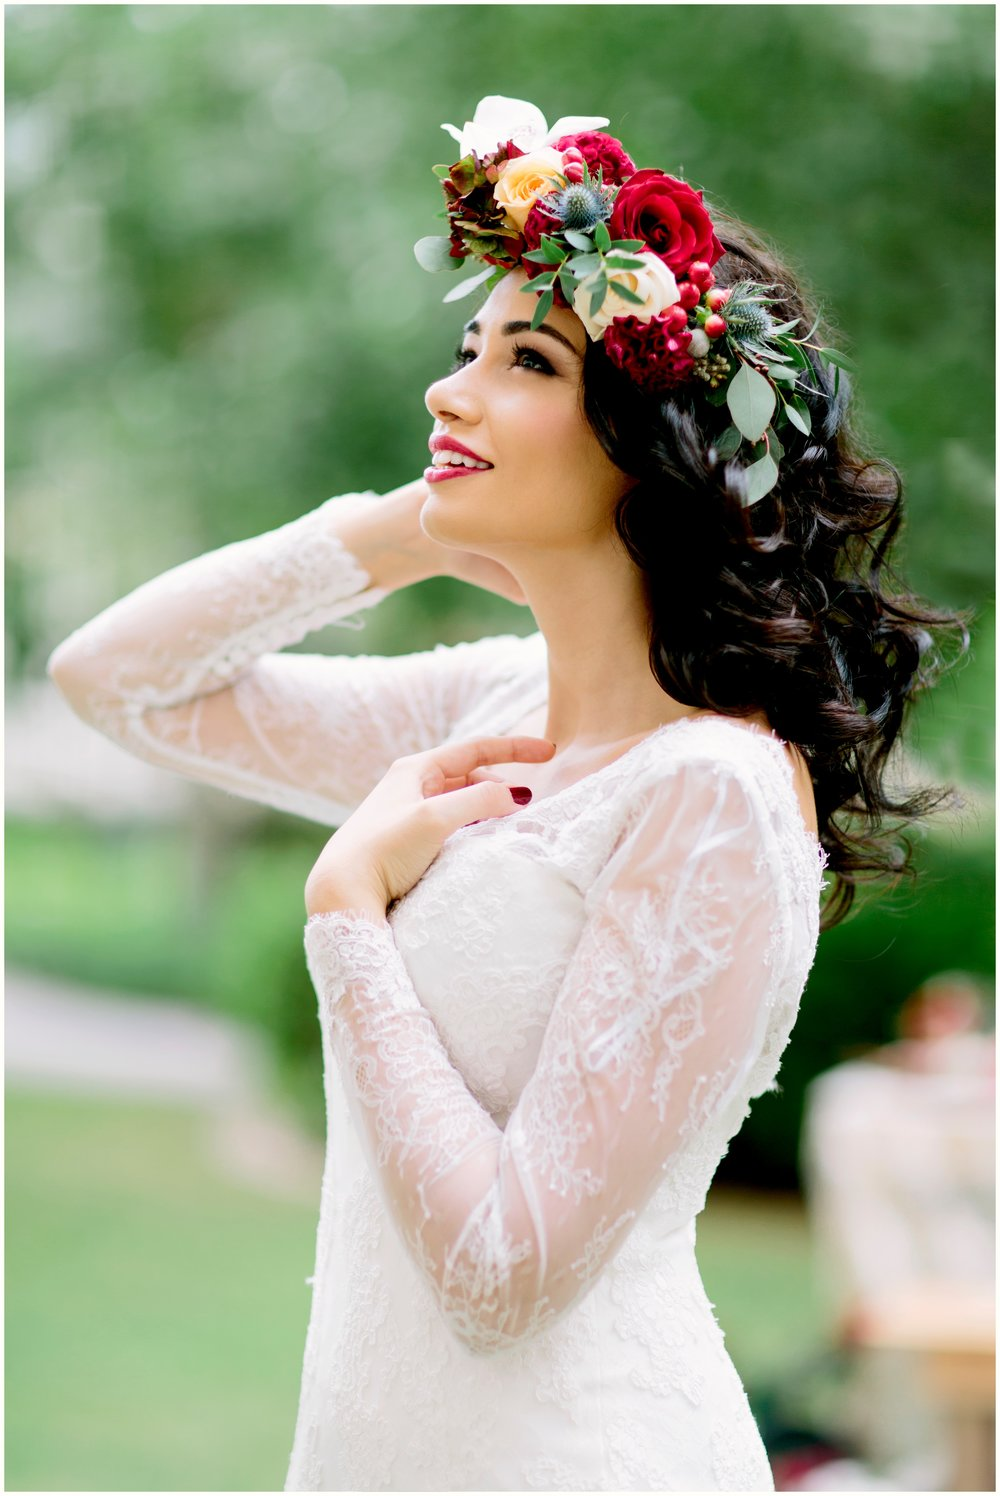 Special thanks to our stunning model: Dalia Fadel